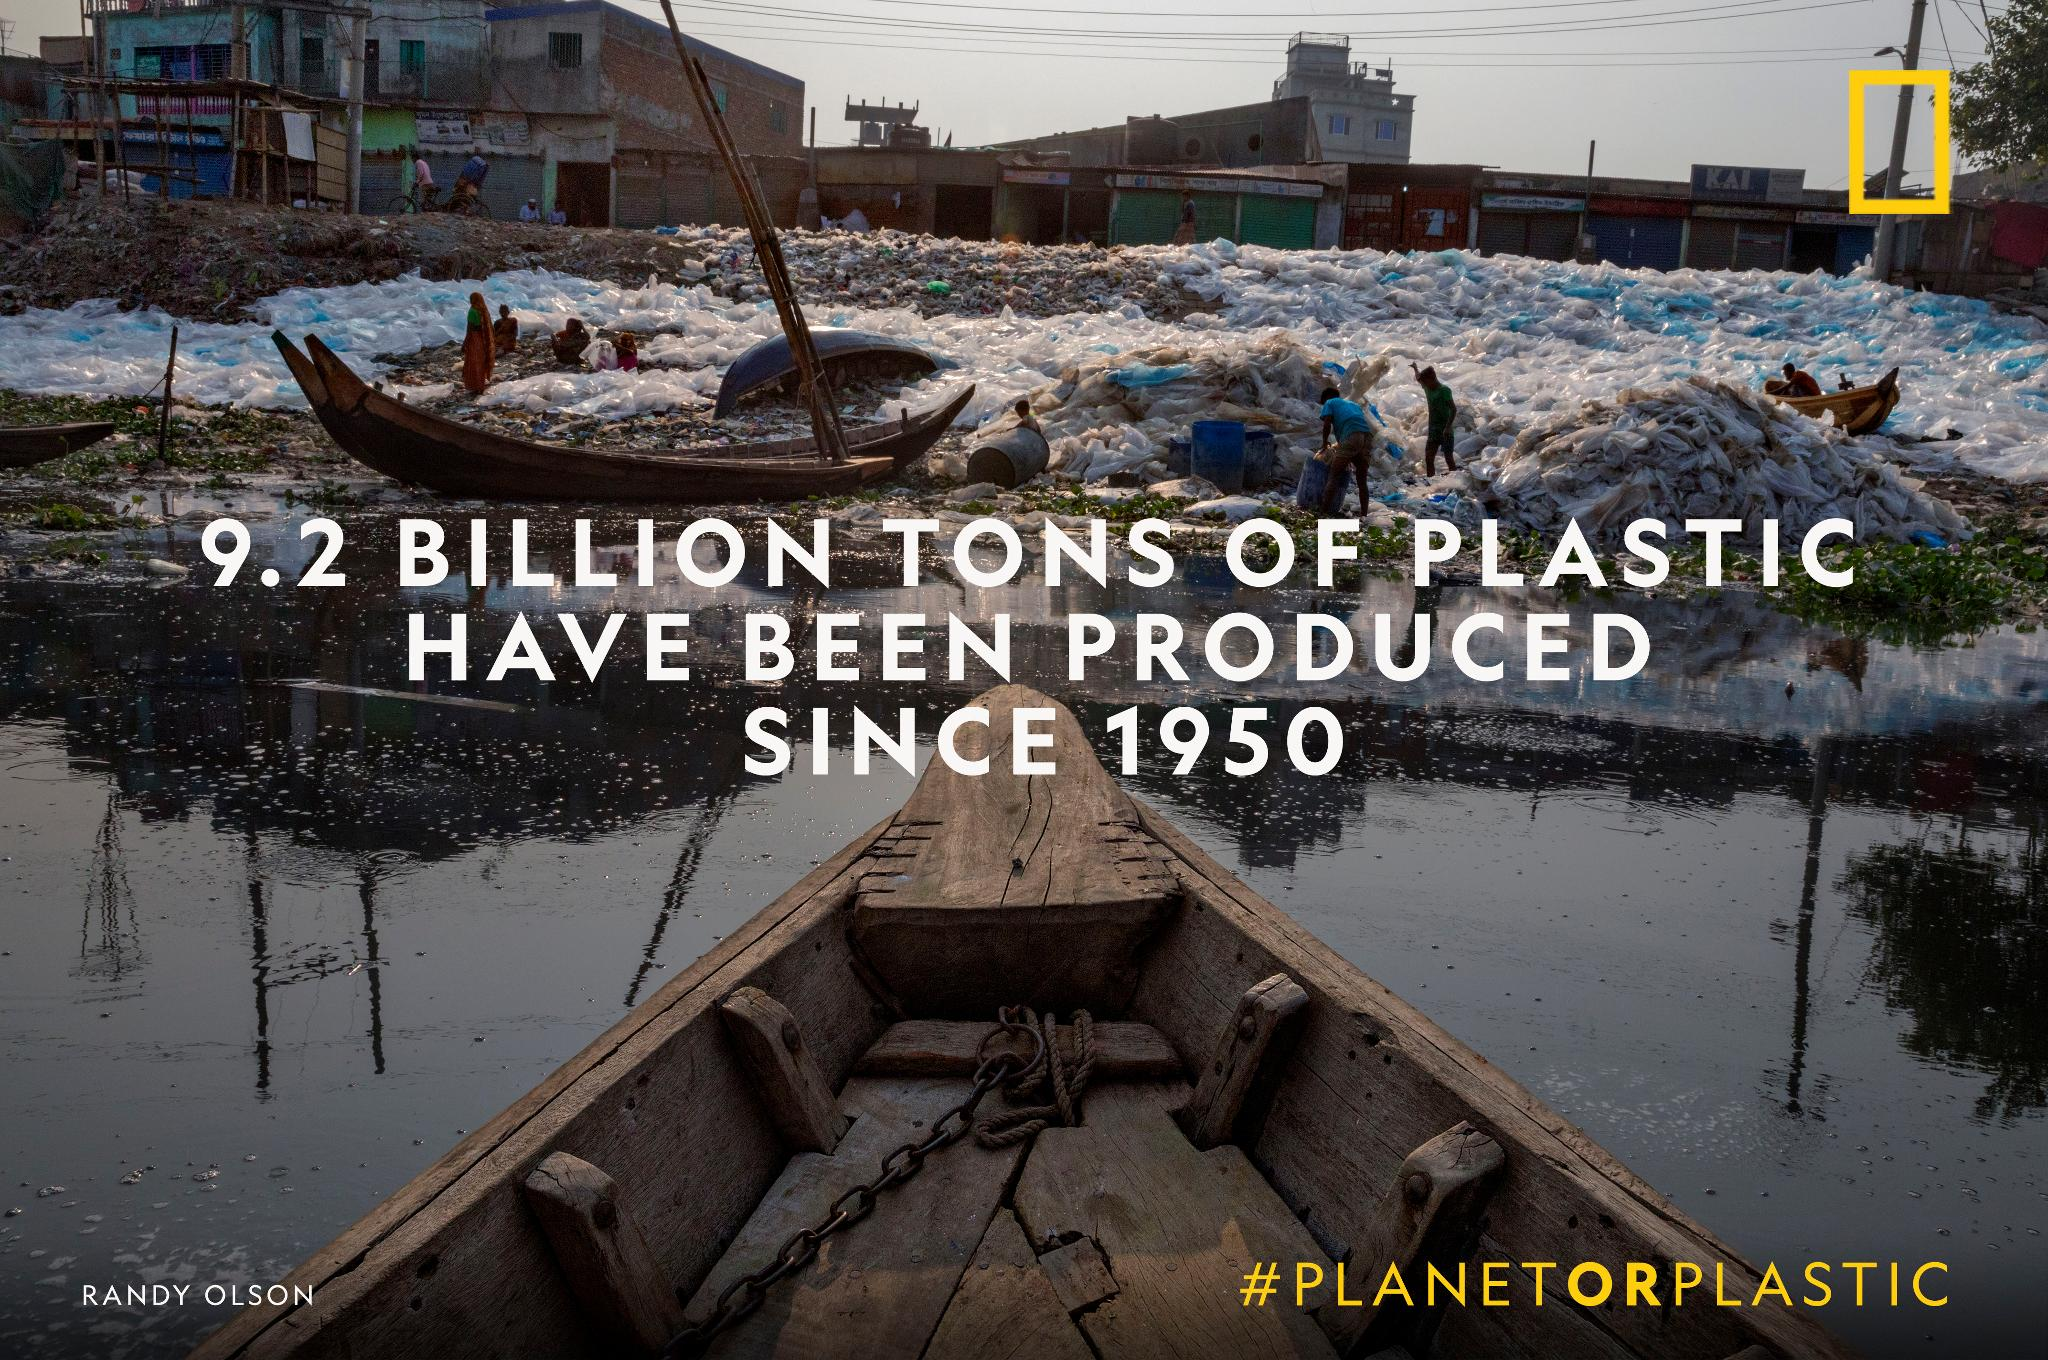 Will you choose #PlanetOrPlastic? Take your pledge today. https://t.co/bRpFlx6weq https://t.co/8bK6D2JyS5